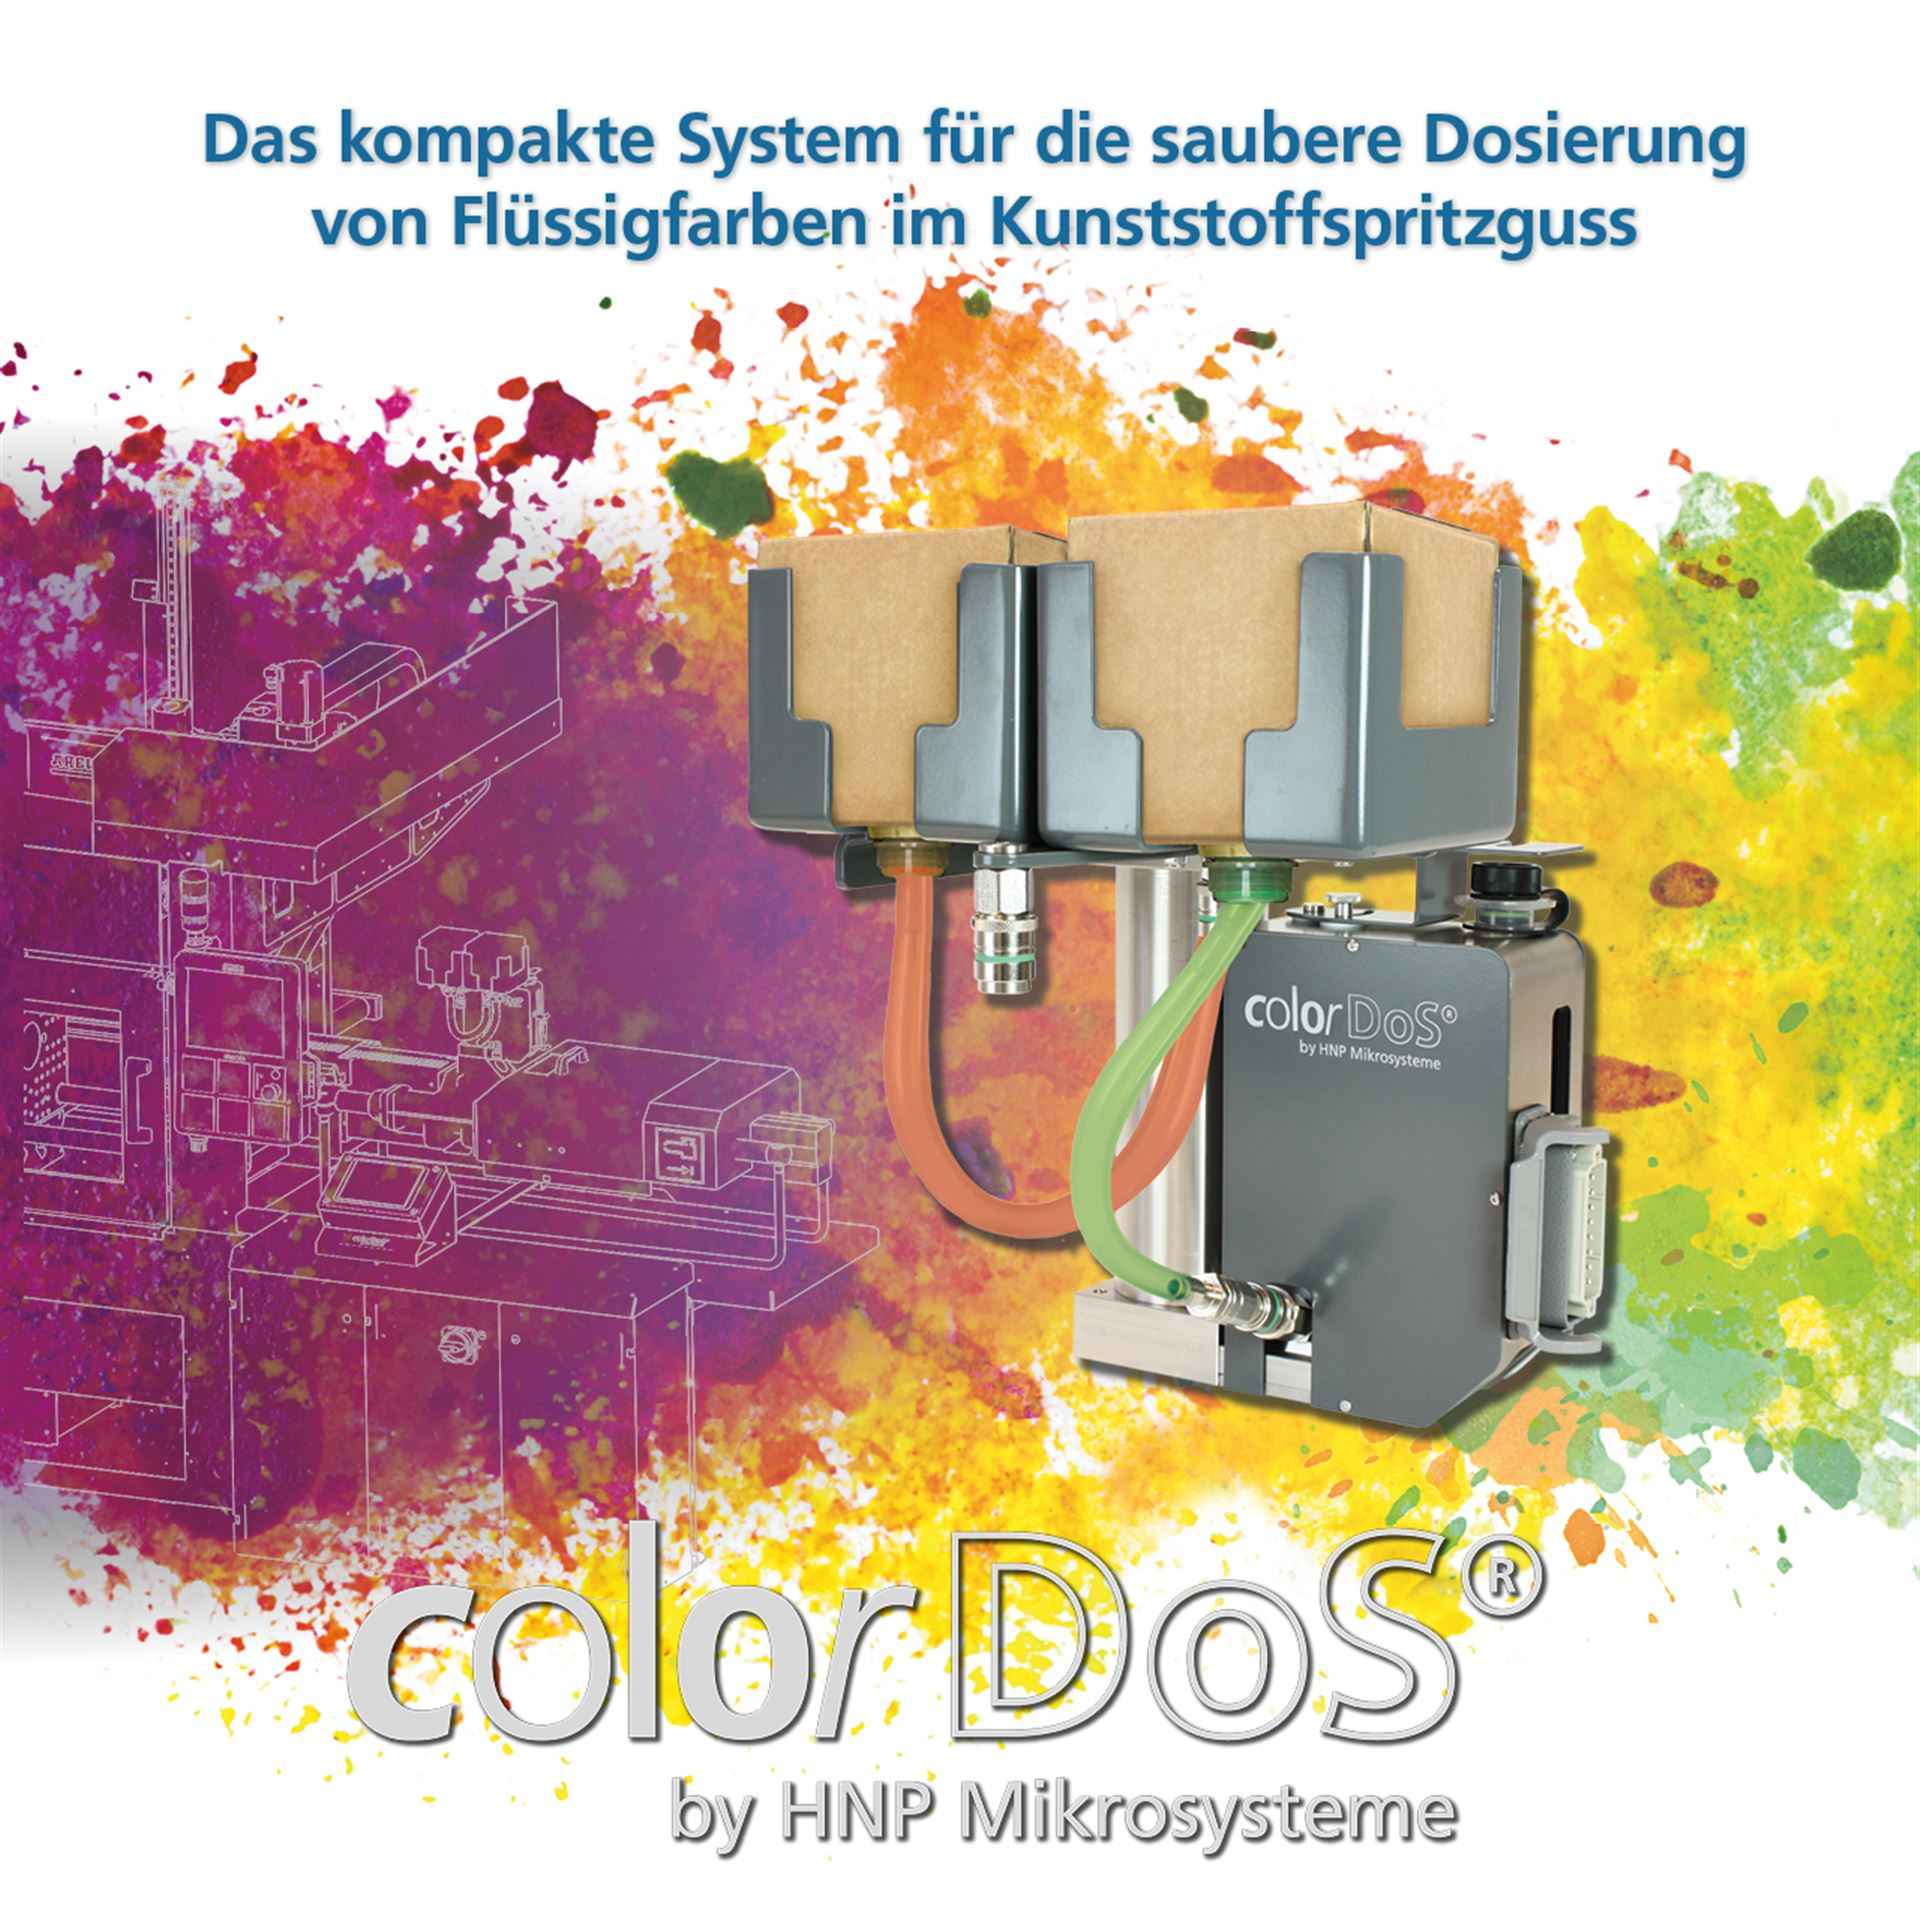 colorDoS- the compact system for clean dosing of liquid colors in plastic injection molding